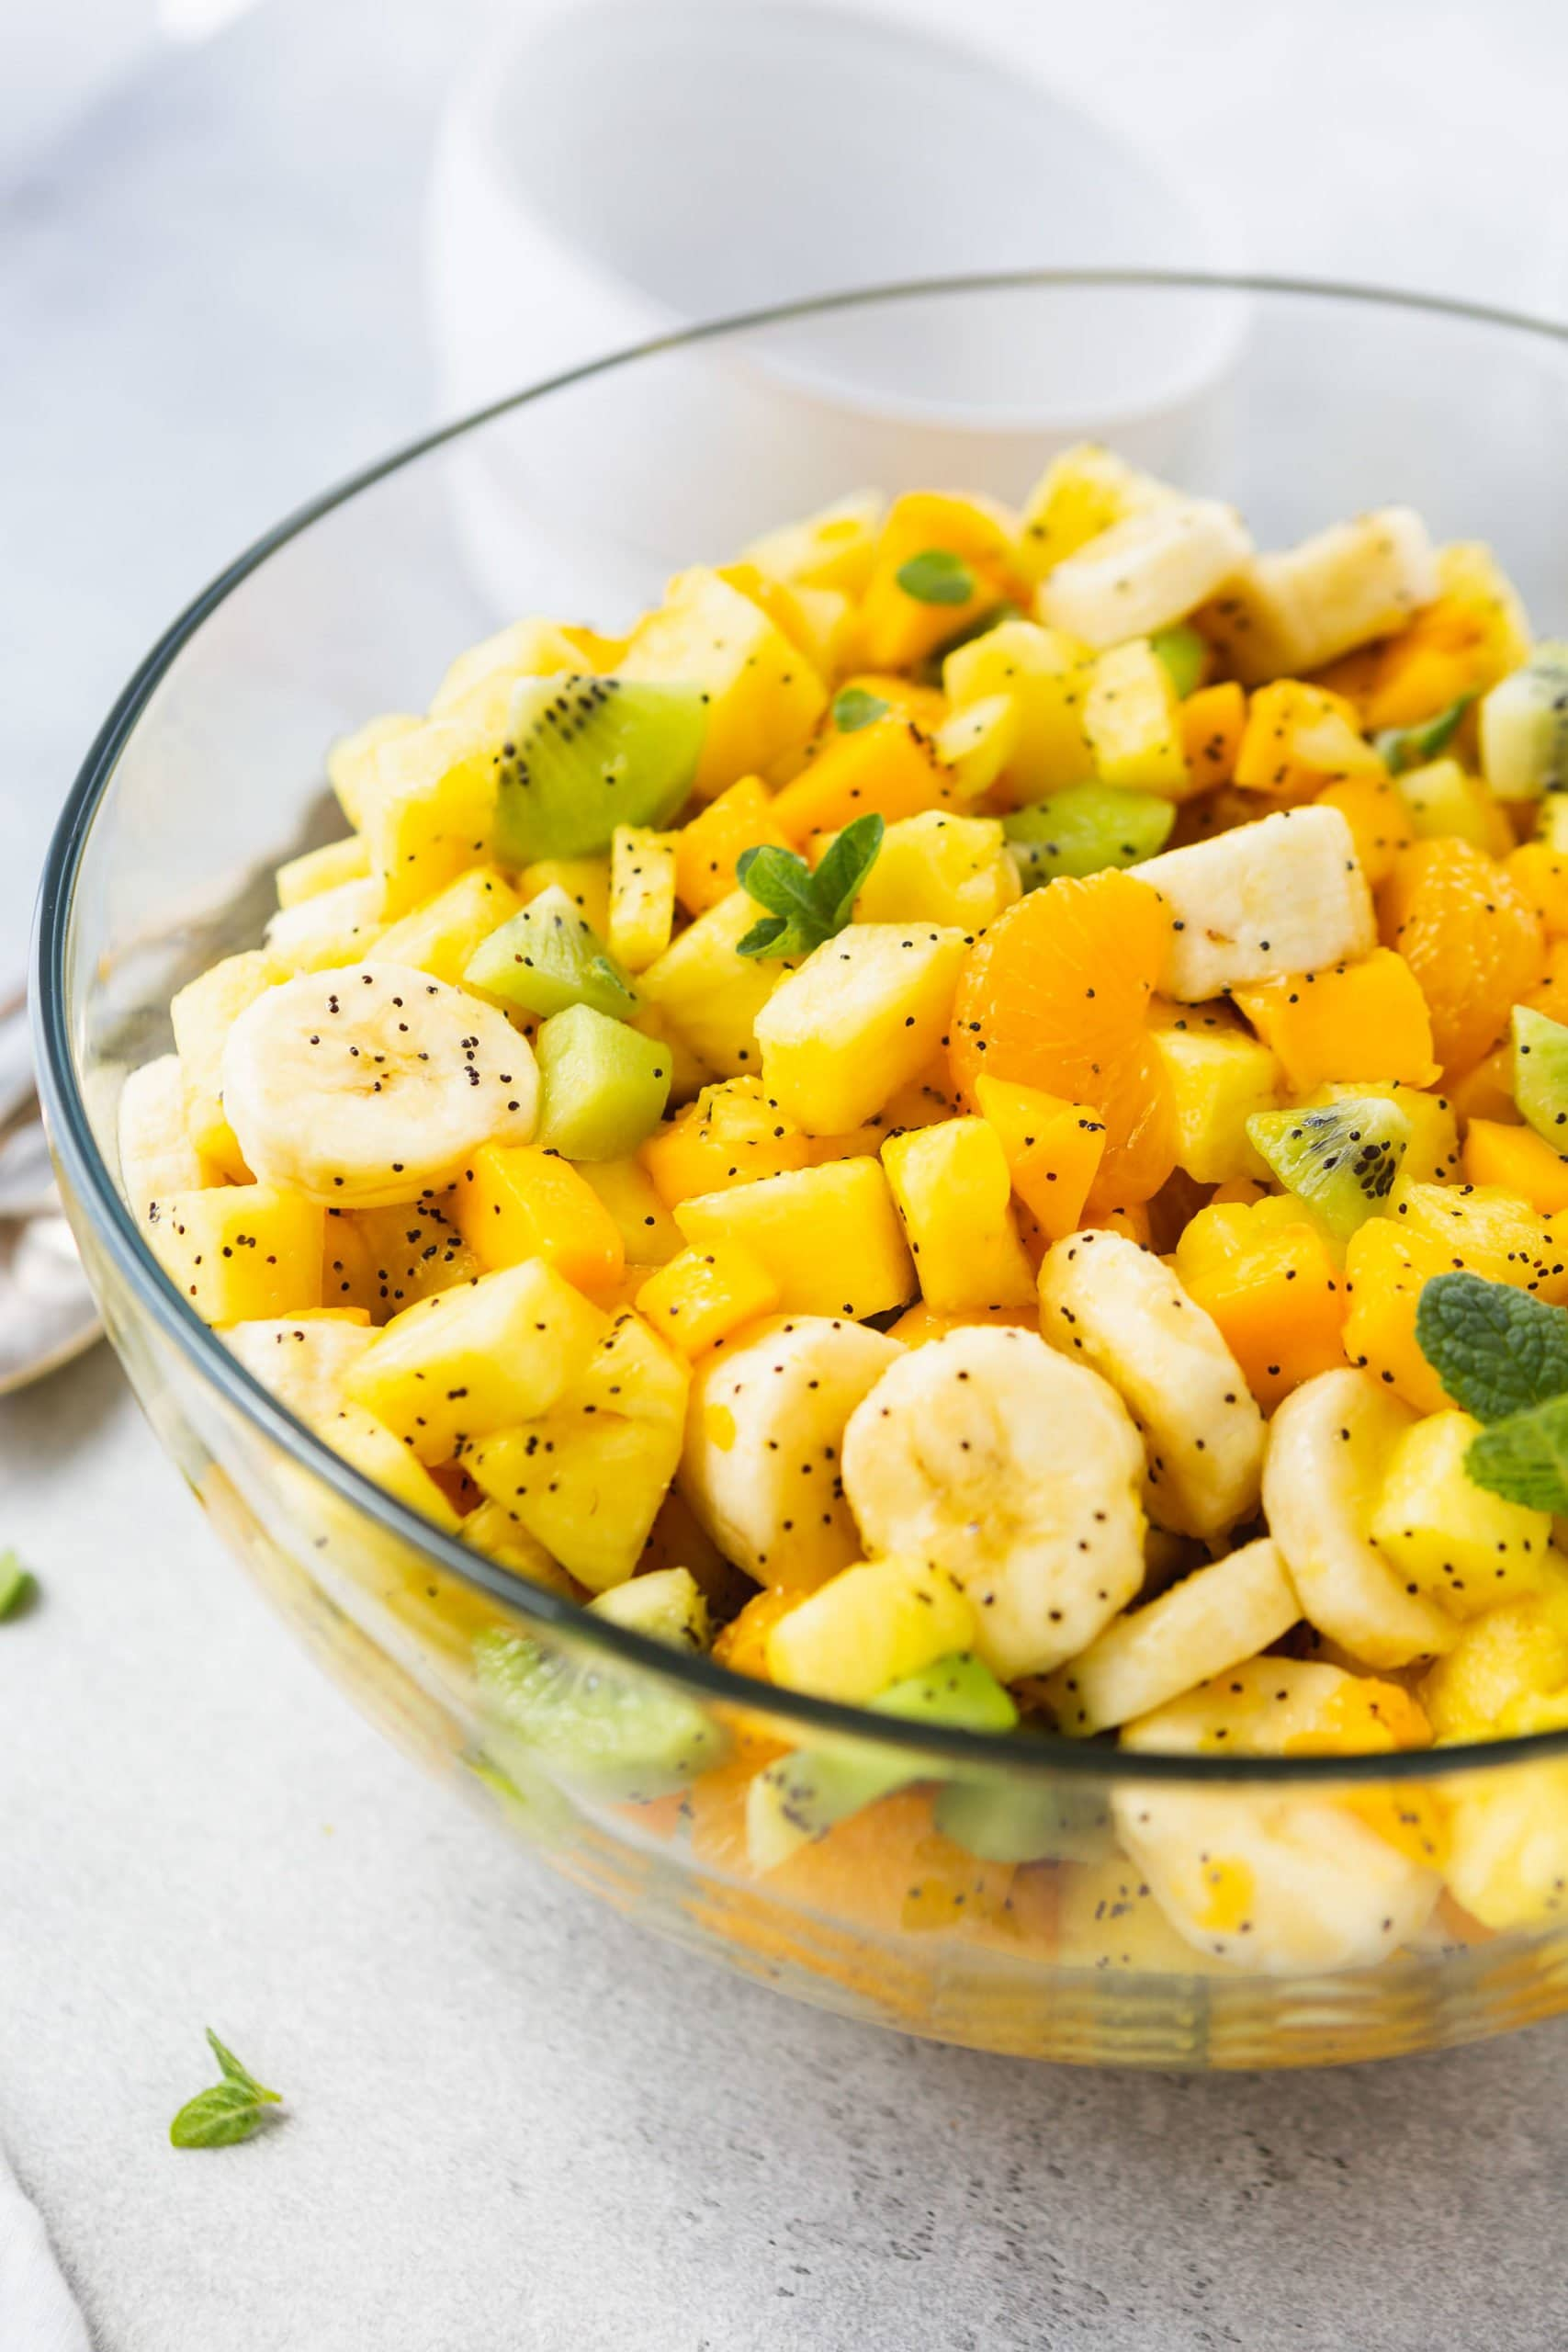 a glass bowl full of chopped up tropical fruits - mandarin oranges, kiwi, pineapple, bananas - all mixed in a bowl and coated in a poppy seed dressing.